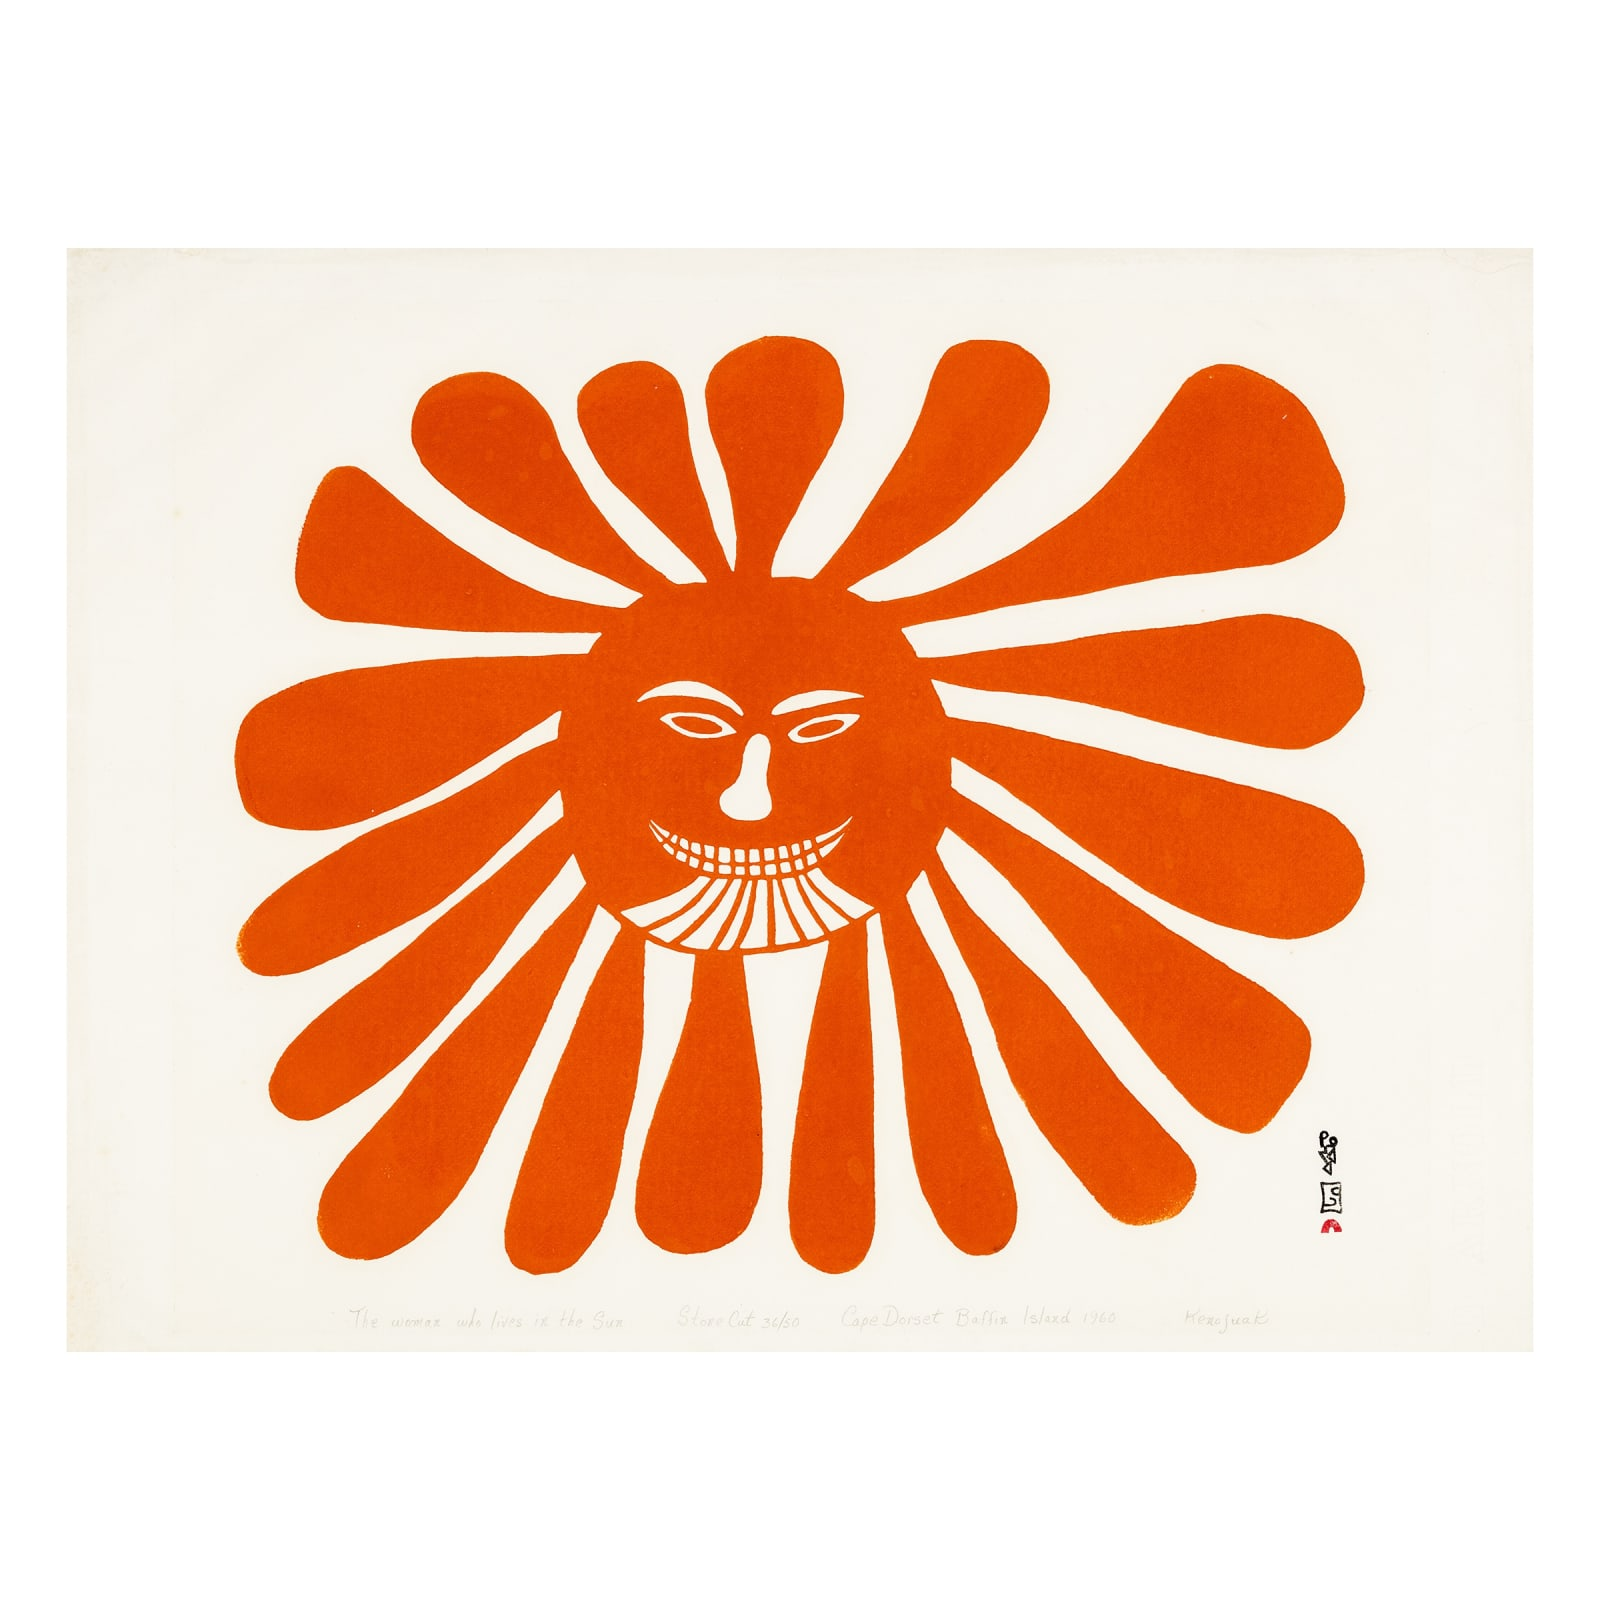 KENOJUAK ASHEVAK, C.C., R.C.A (1927-2013) KINNGAIT (CAPE DORSET)  The Woman who Lives in the Sun, 1960  REALIZED: $78,000